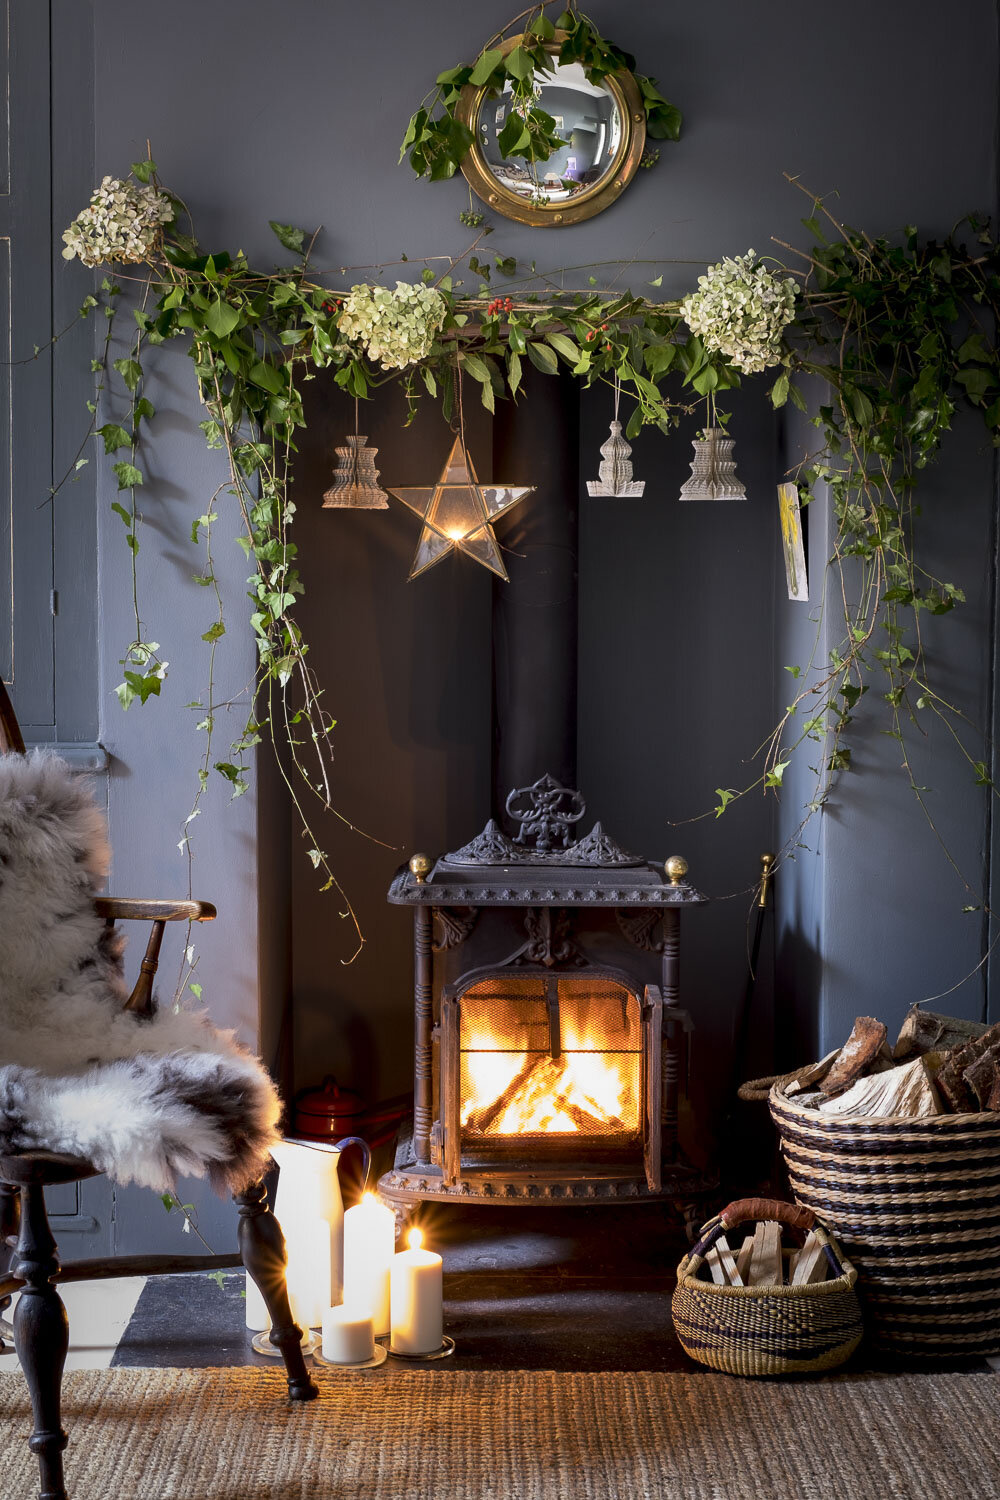 Cosy Christmas fireplace with wood burning stove and holly and i